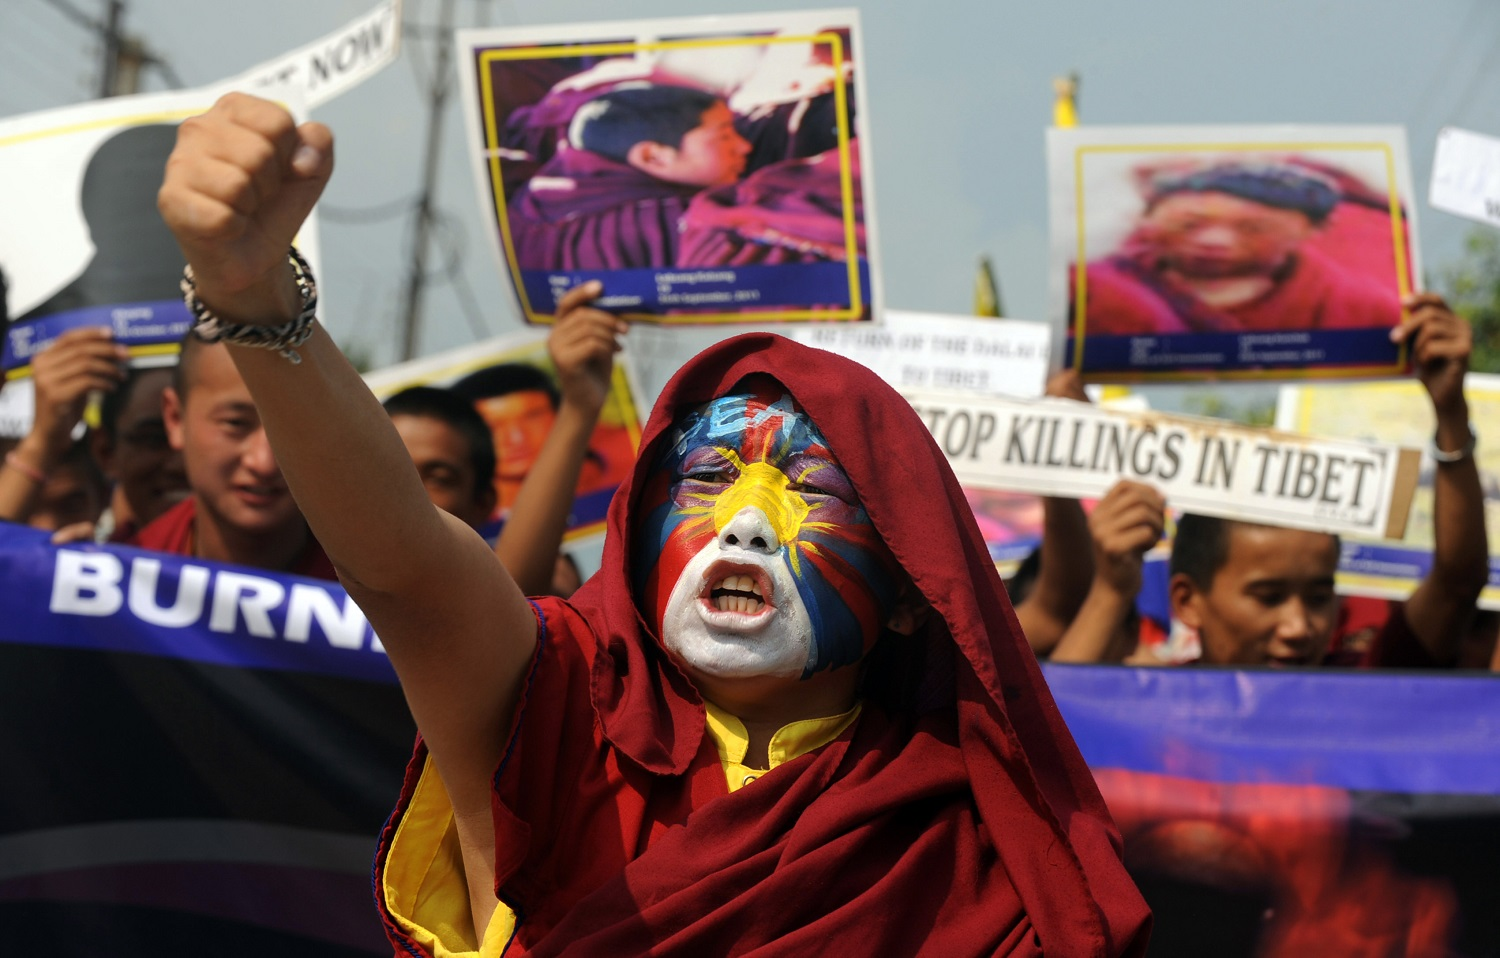 A Buddhist monk with the Tibetan flag painted on his face, in Siliguri, India, November 2011, protests in solidarity with dozens of monks who self-immolated in Tibetan parts of China to draw attention to their opposition to Beijing's repression of indigenous culture.